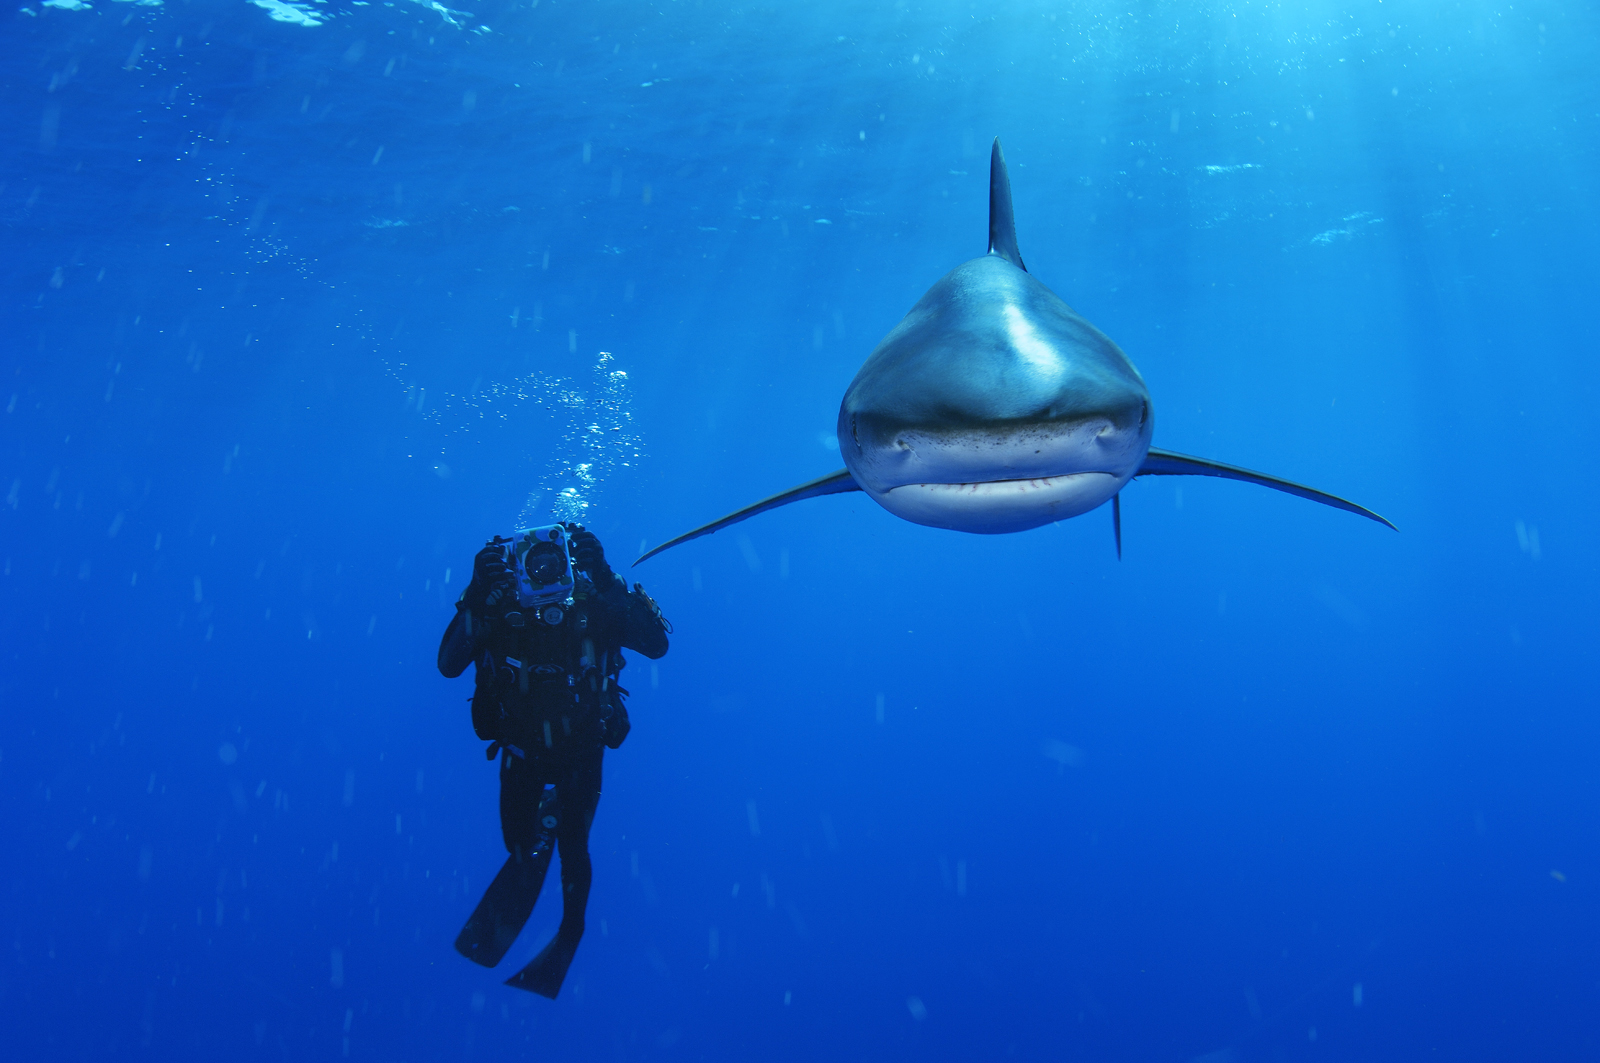 An oceanic whitetip shark swims near a biologist in the Bahamas.<div class='credit'><strong>Credit:</strong> An oceanic whitetip shark swims near a biologist in the Bahamas.</div>